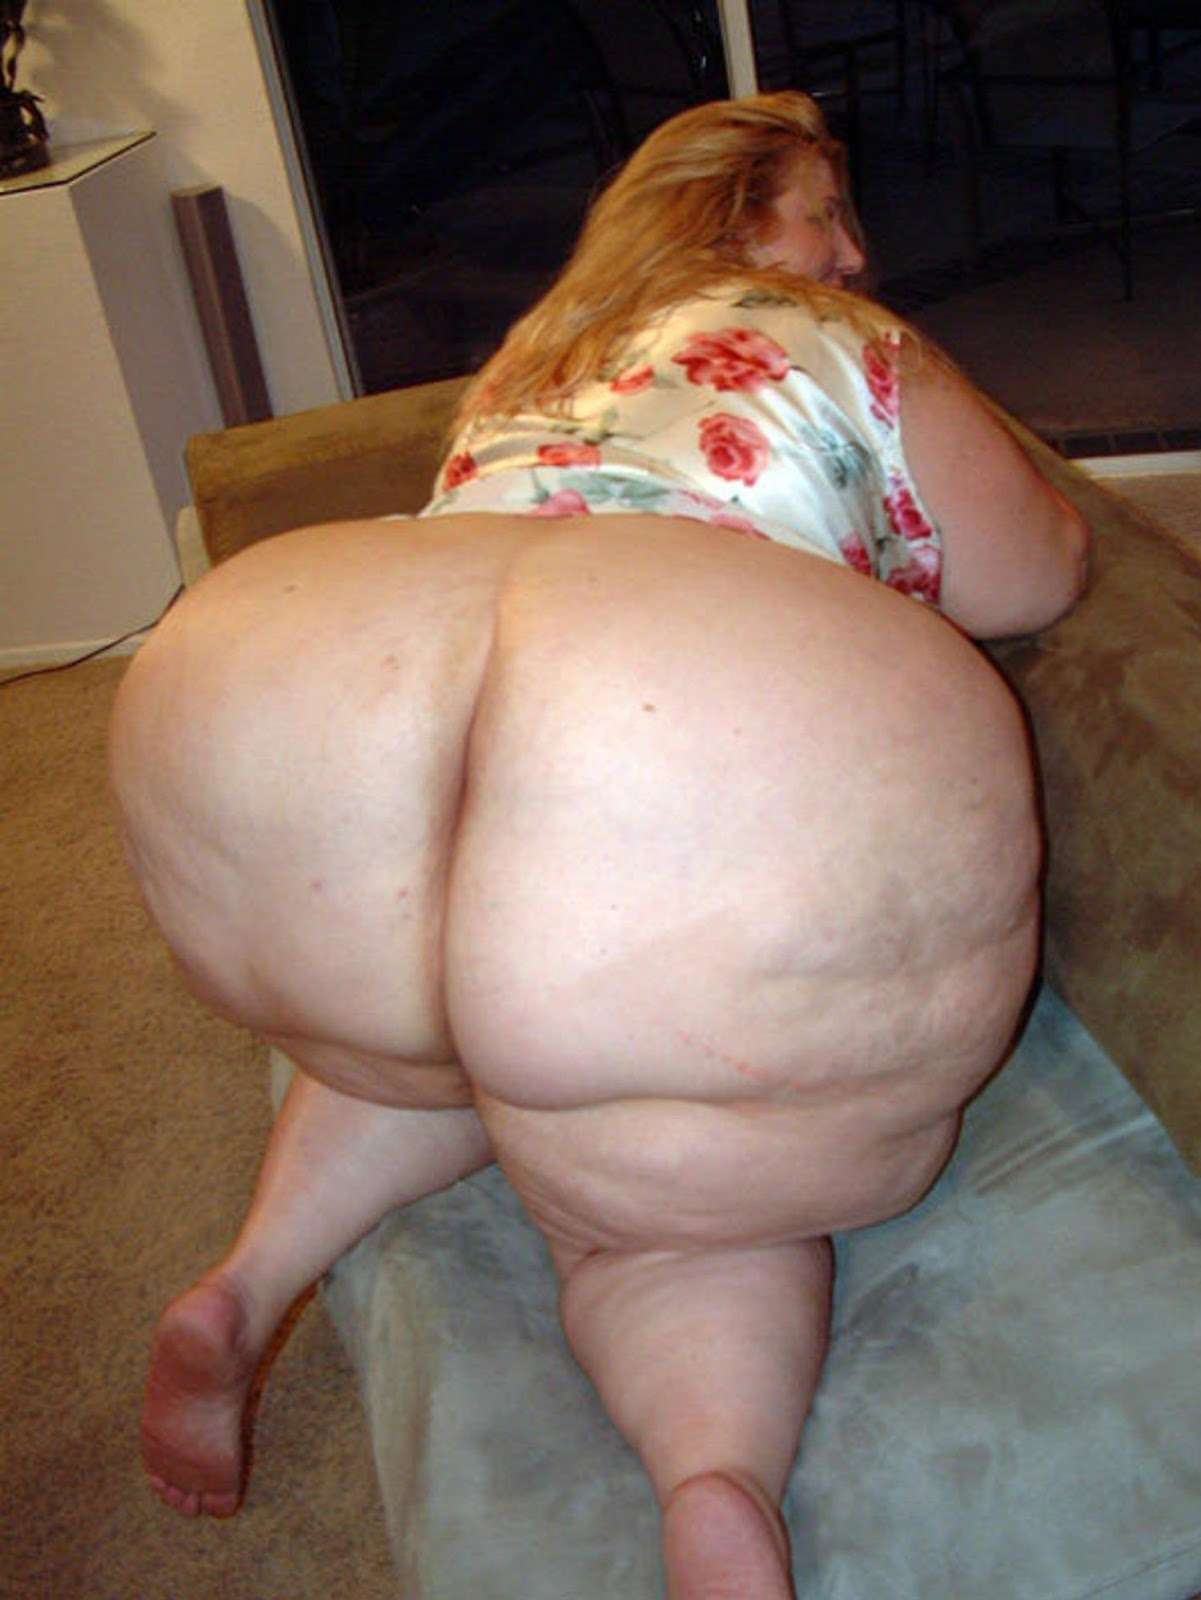 Dam What SSBBW big ass Video such